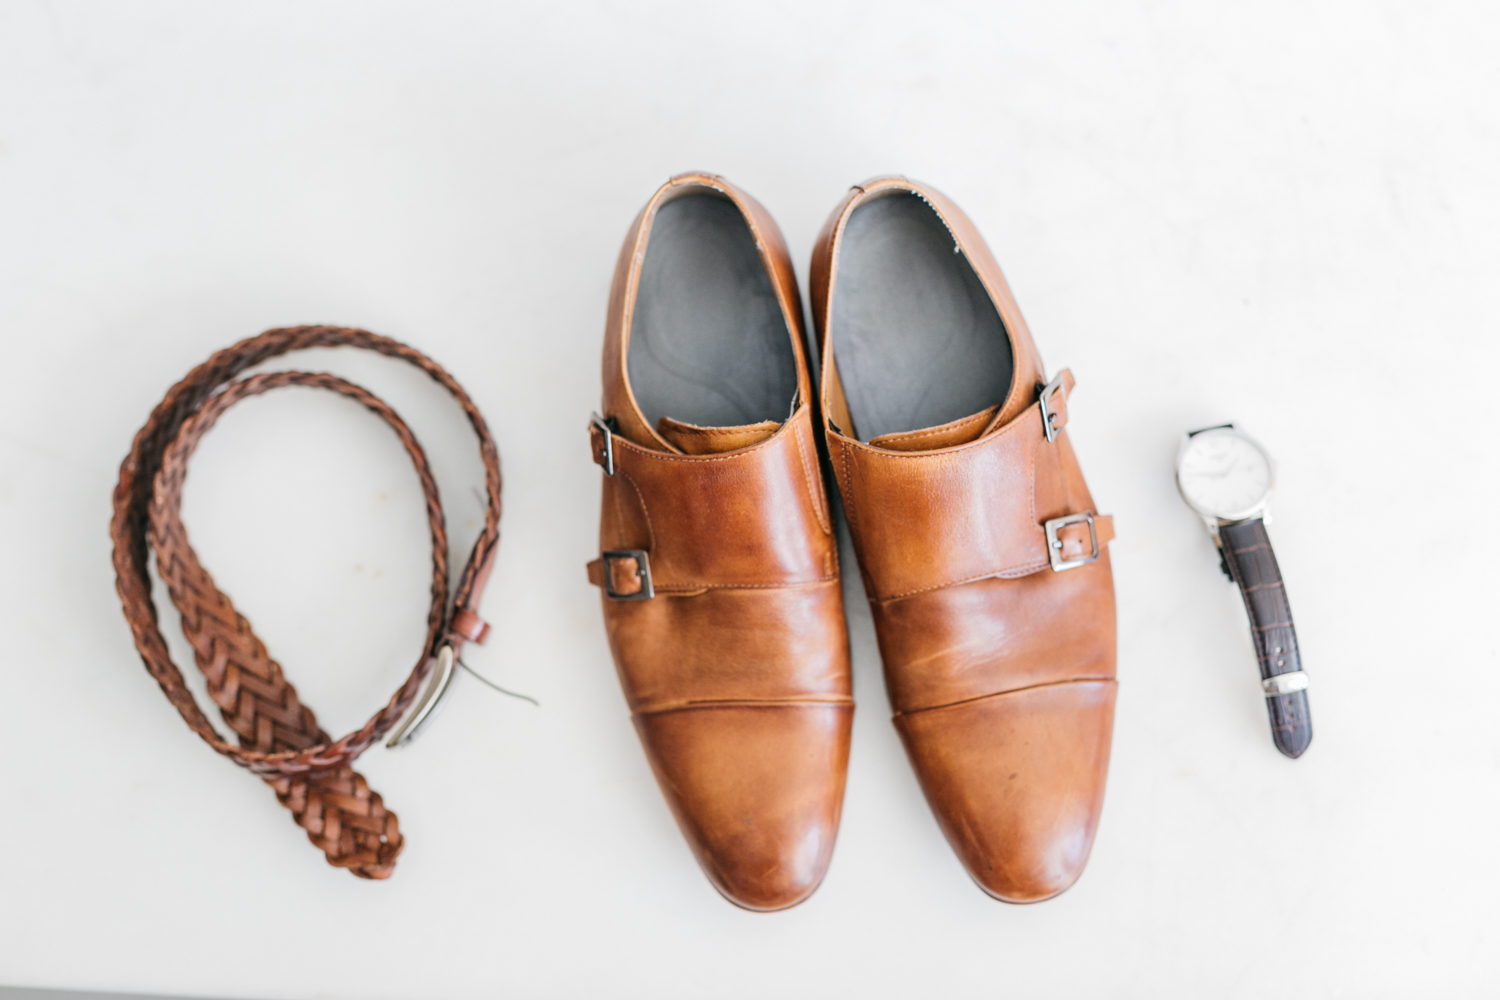 Groom's shoots belt and watch for his destination wedding